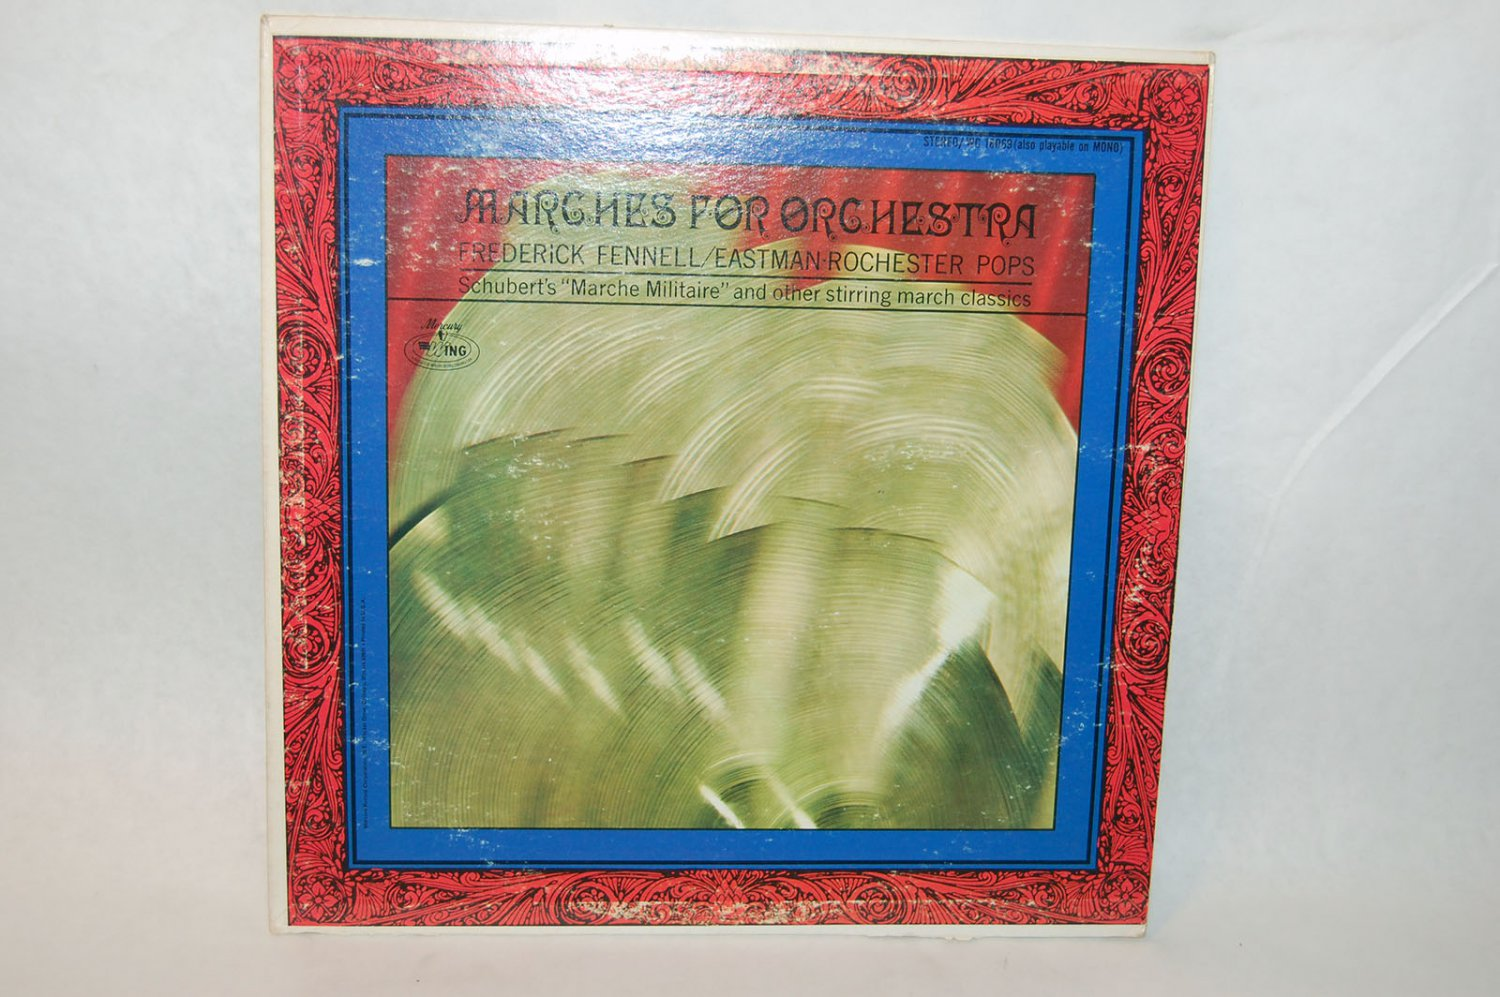 """MARCHES FOR ORCHESTRA Frederick Fennell / Eastman Rochester Pops 12"""" Vinyl LP Mercury"""